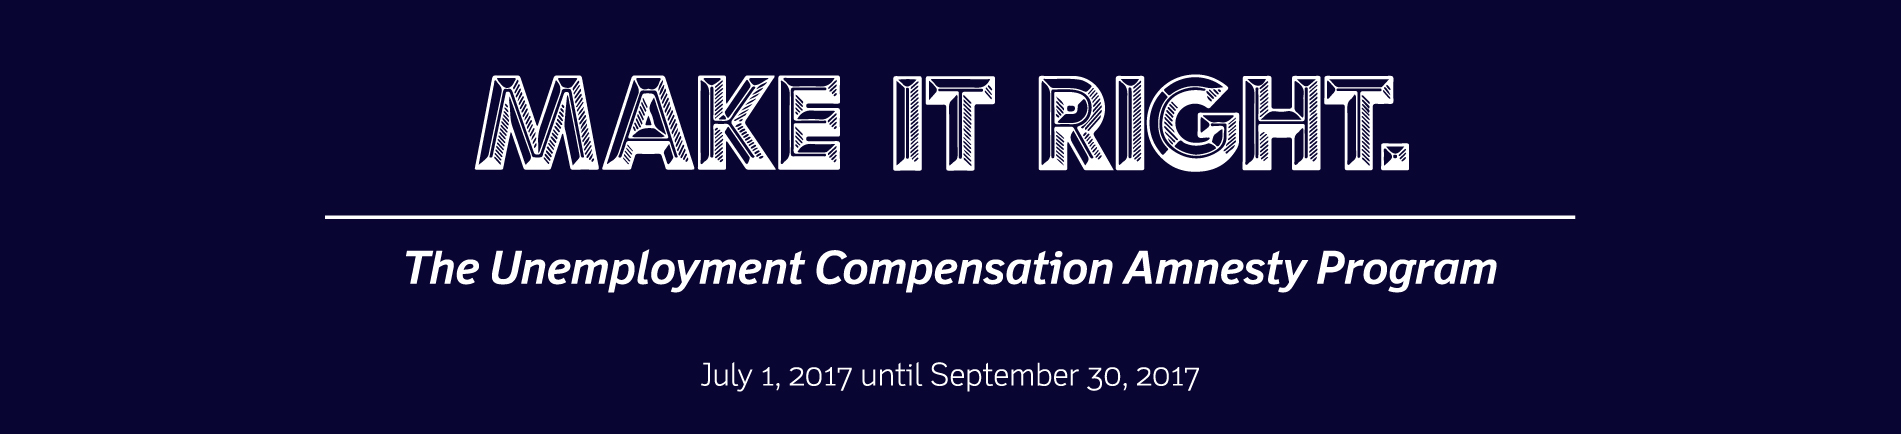 The Unemployment Compensation Amnesty Program runs from July 1, 2017 until September 30, 2017.